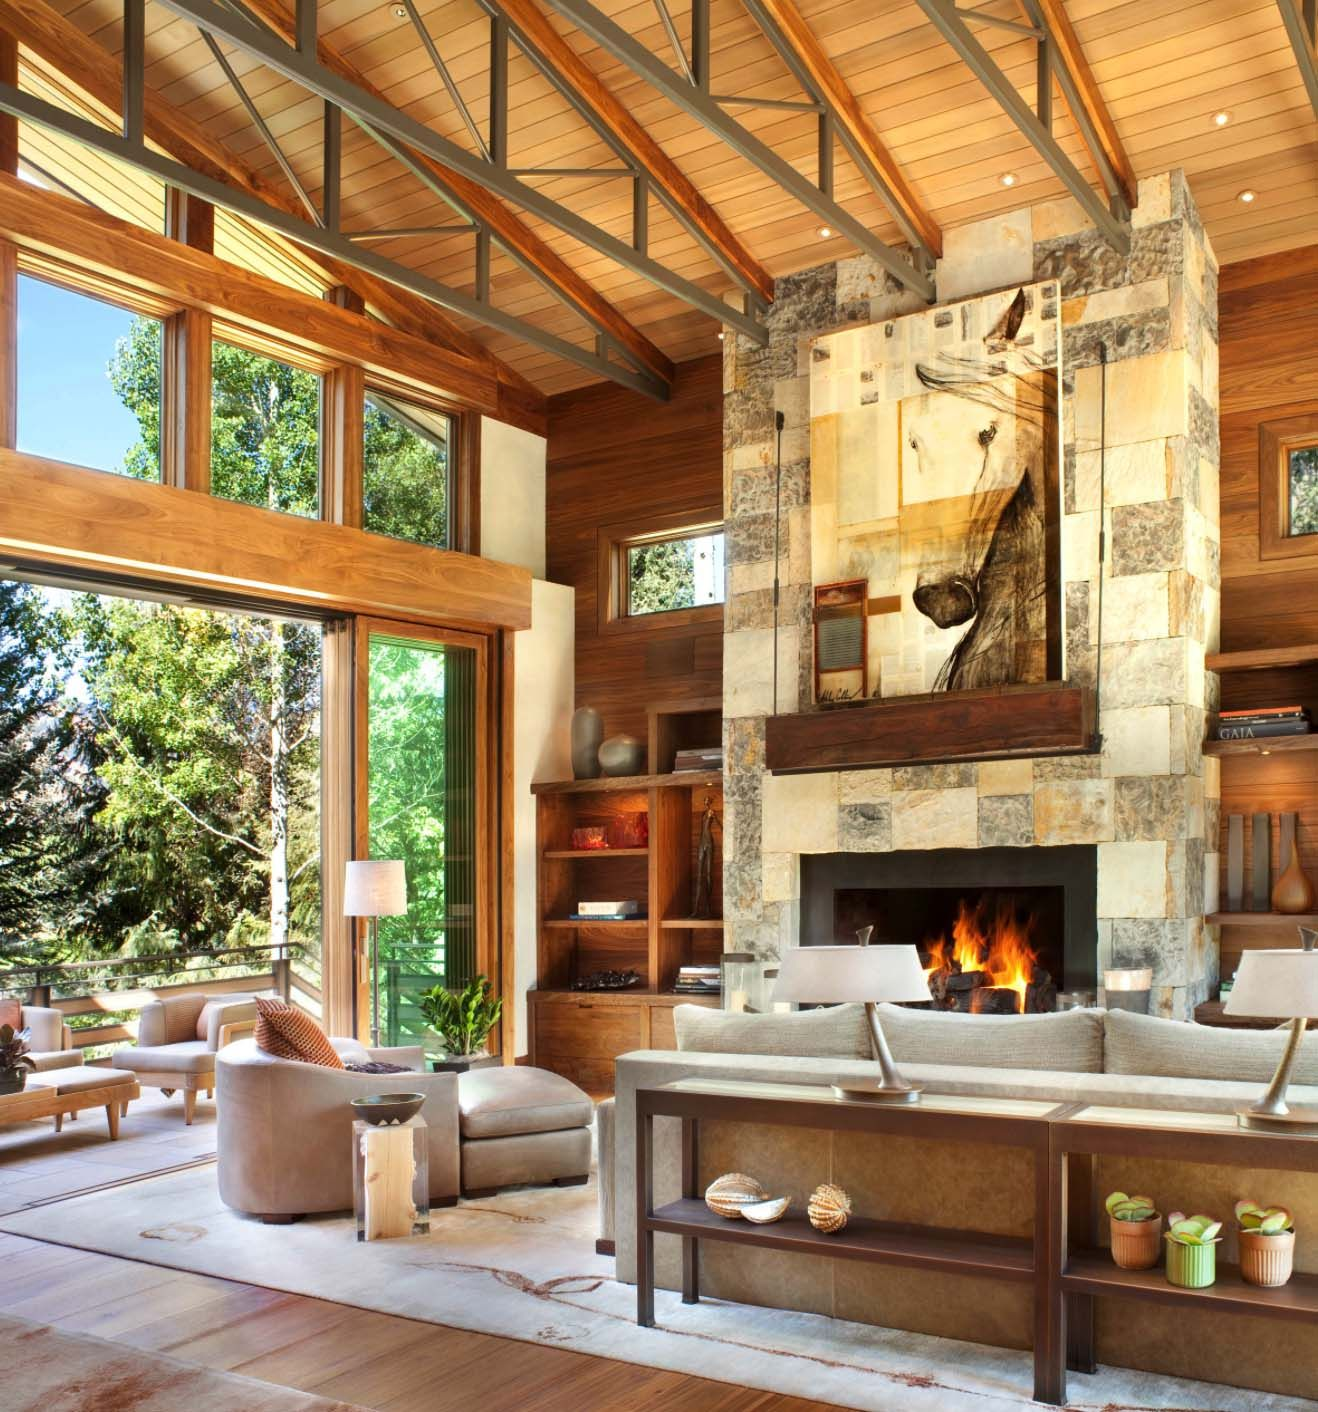 Captivating Modern Rustic Home In The Colorado Mountains Rustic